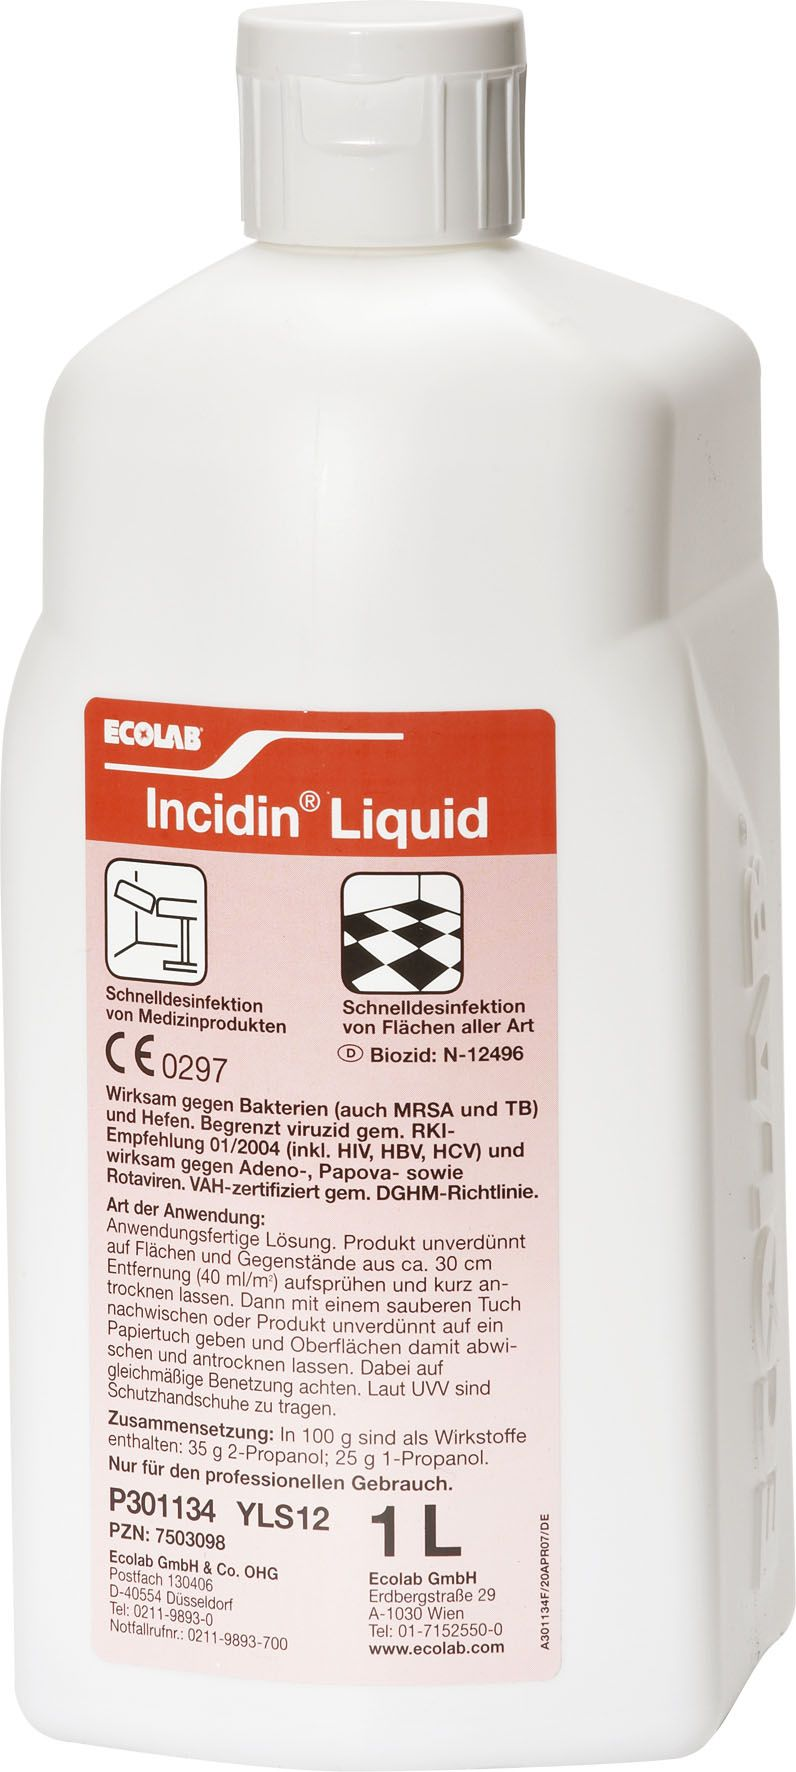 Dezinfectant Incidin Liquid 600 ml - solutie